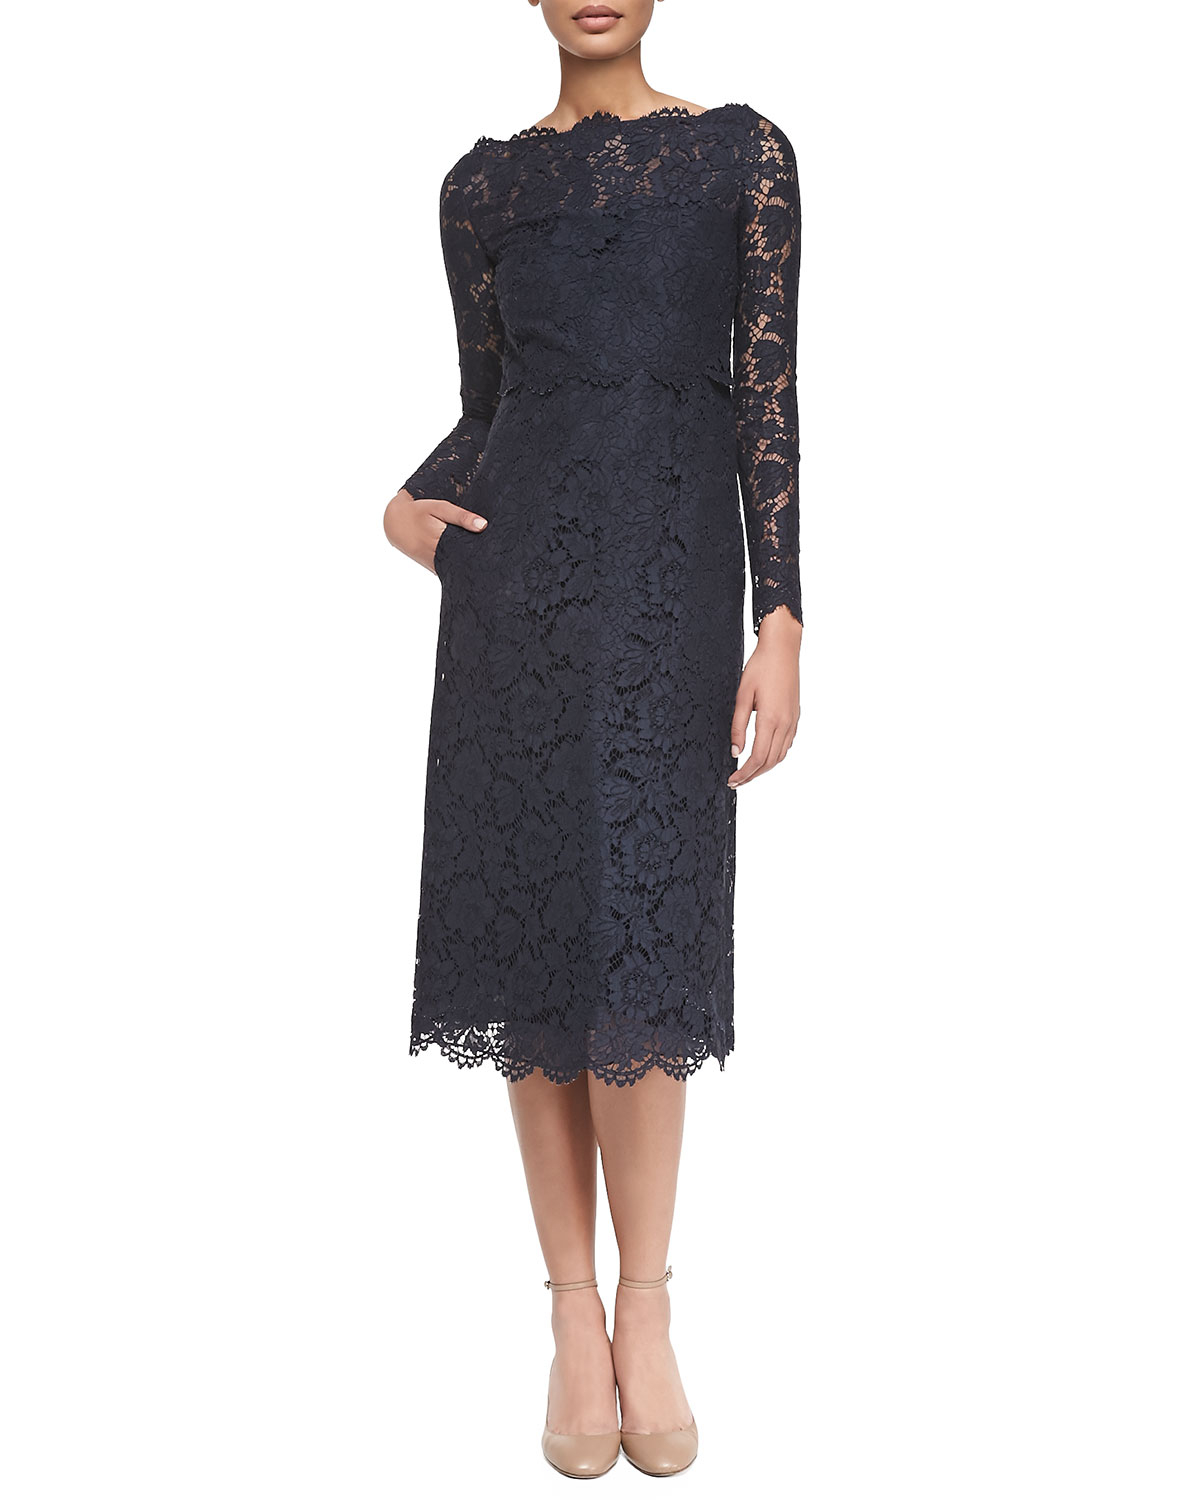 Lyst - Valentino Long-sleeve Tea-length Lace Dress in Black